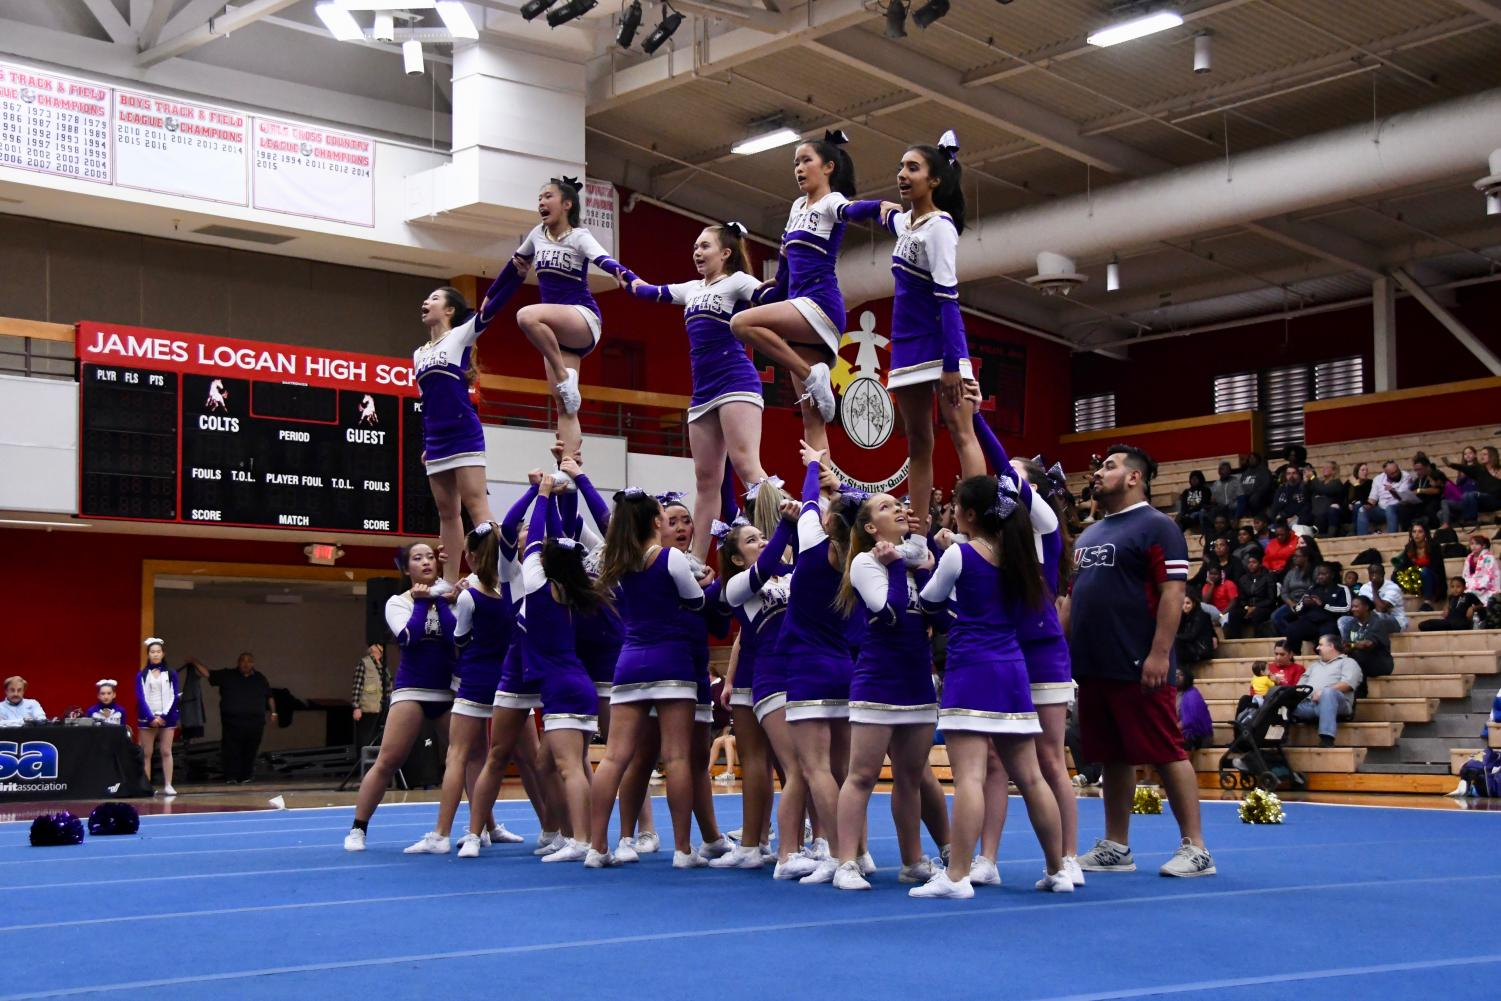 Without a coach, the MVHS cheer team may not qualify for the National High School Cheerleading Competition, an event they've attended the past few years. Photo by Roshan Fernandez.